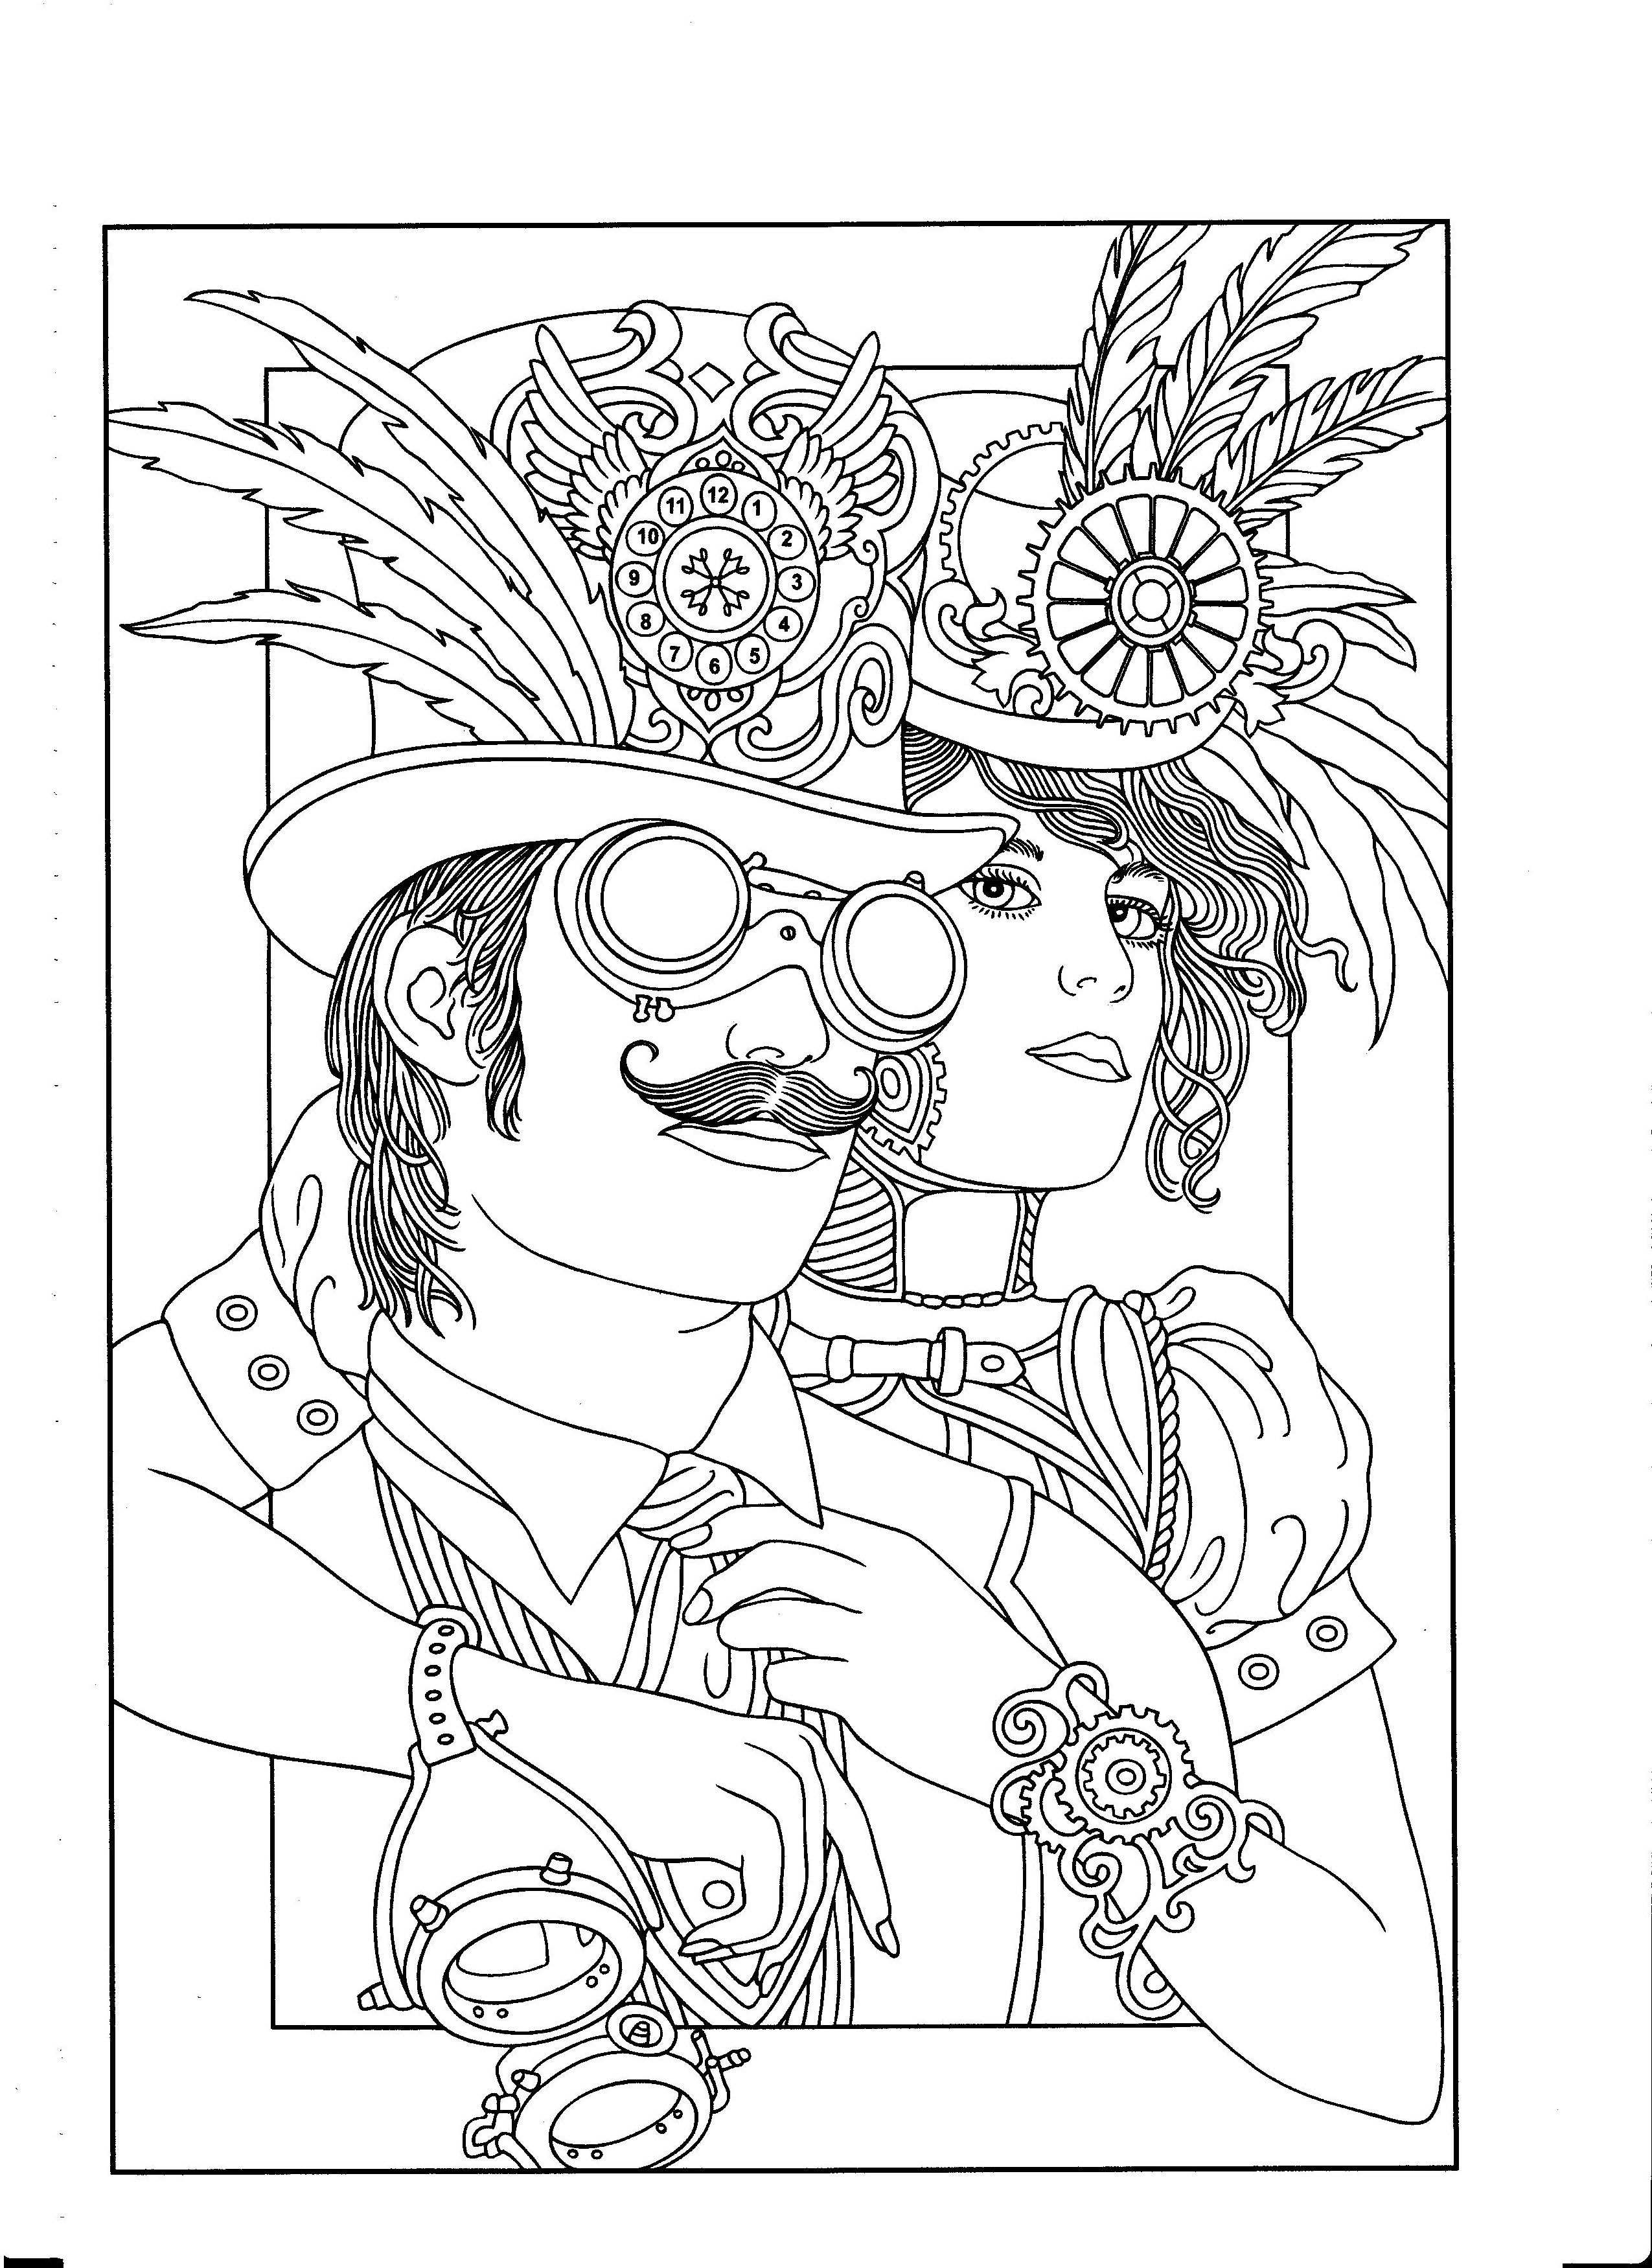 Steampunk Coloring Page Steampunk Style Adult Coloring